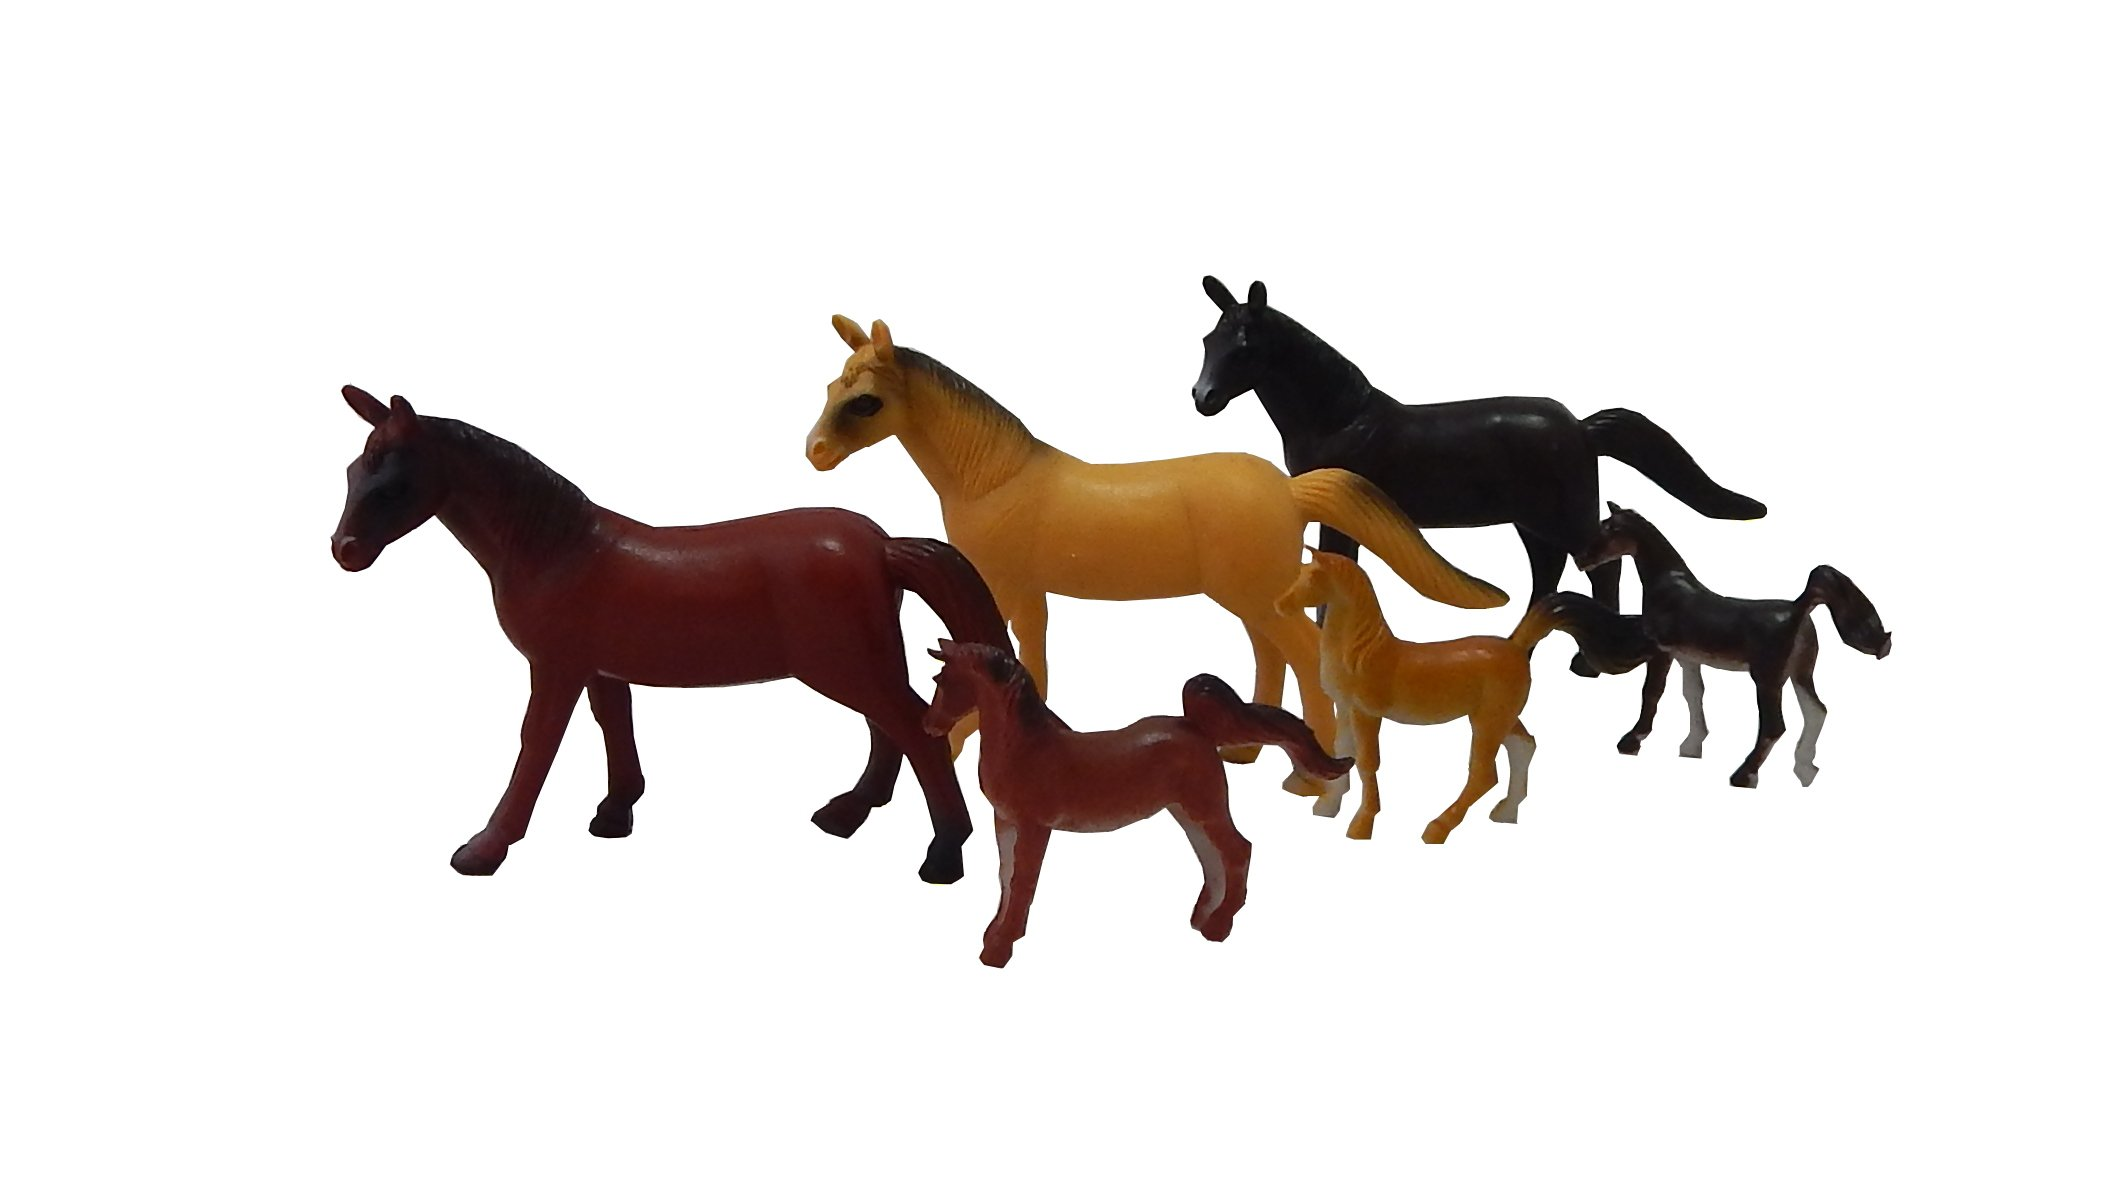 Pony & Horse Figures - 2 Dozen (24) Birthday Party Favors Prizes - Cupcake Toppers Teacher Rewards